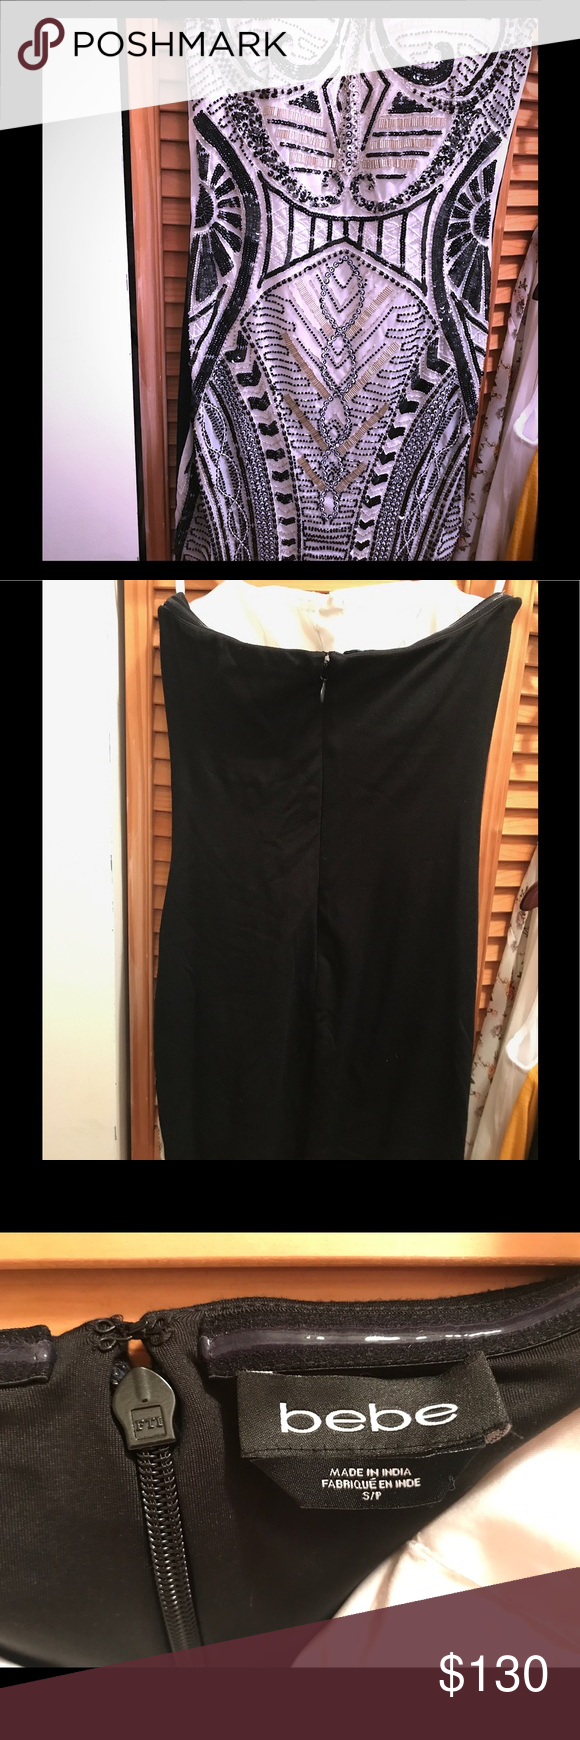 $249 EUC BEBE w/b beaded bustier strapless dress. Stunning strapless dress encrusted with intricate beaded Deco motifs. Hidden back hook-and-eye and zip closure. Fully lined. 79% Nylon, 21% spandex. Without tag, used only one time, good condition. Style Sold out in stores. bebe Dresses Mini